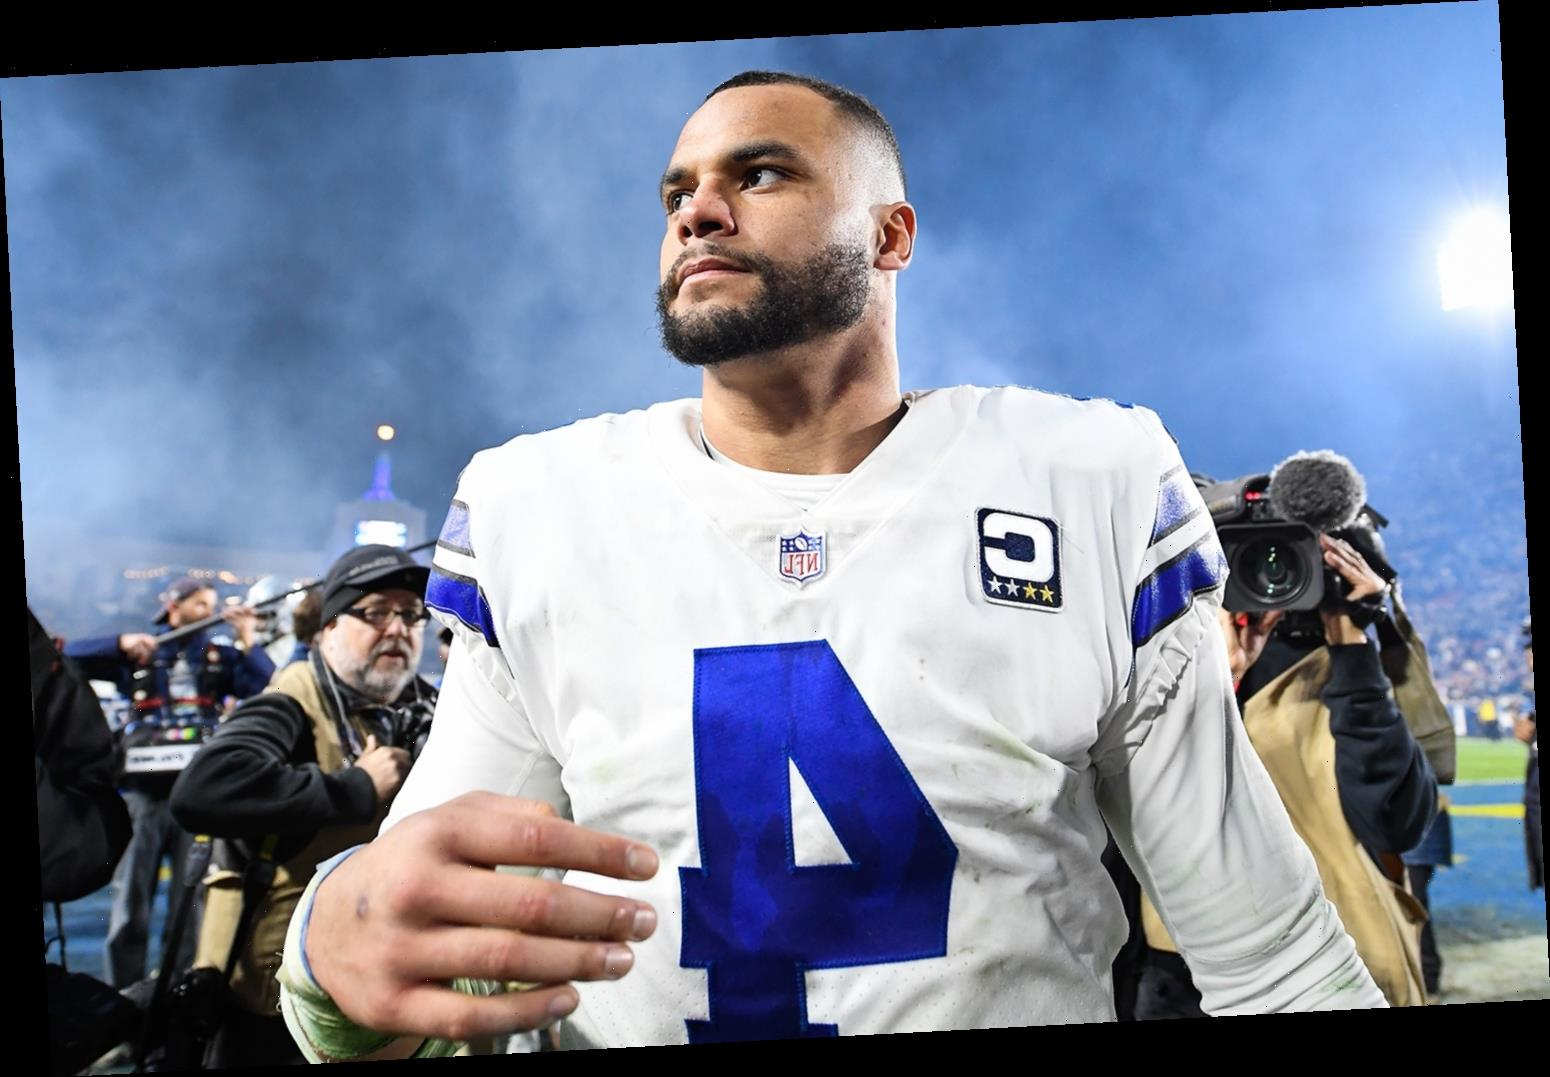 Dallas Cowboys Quarterback Dak Prescott Thanks Fans for Their Support Following His Ankle Injury